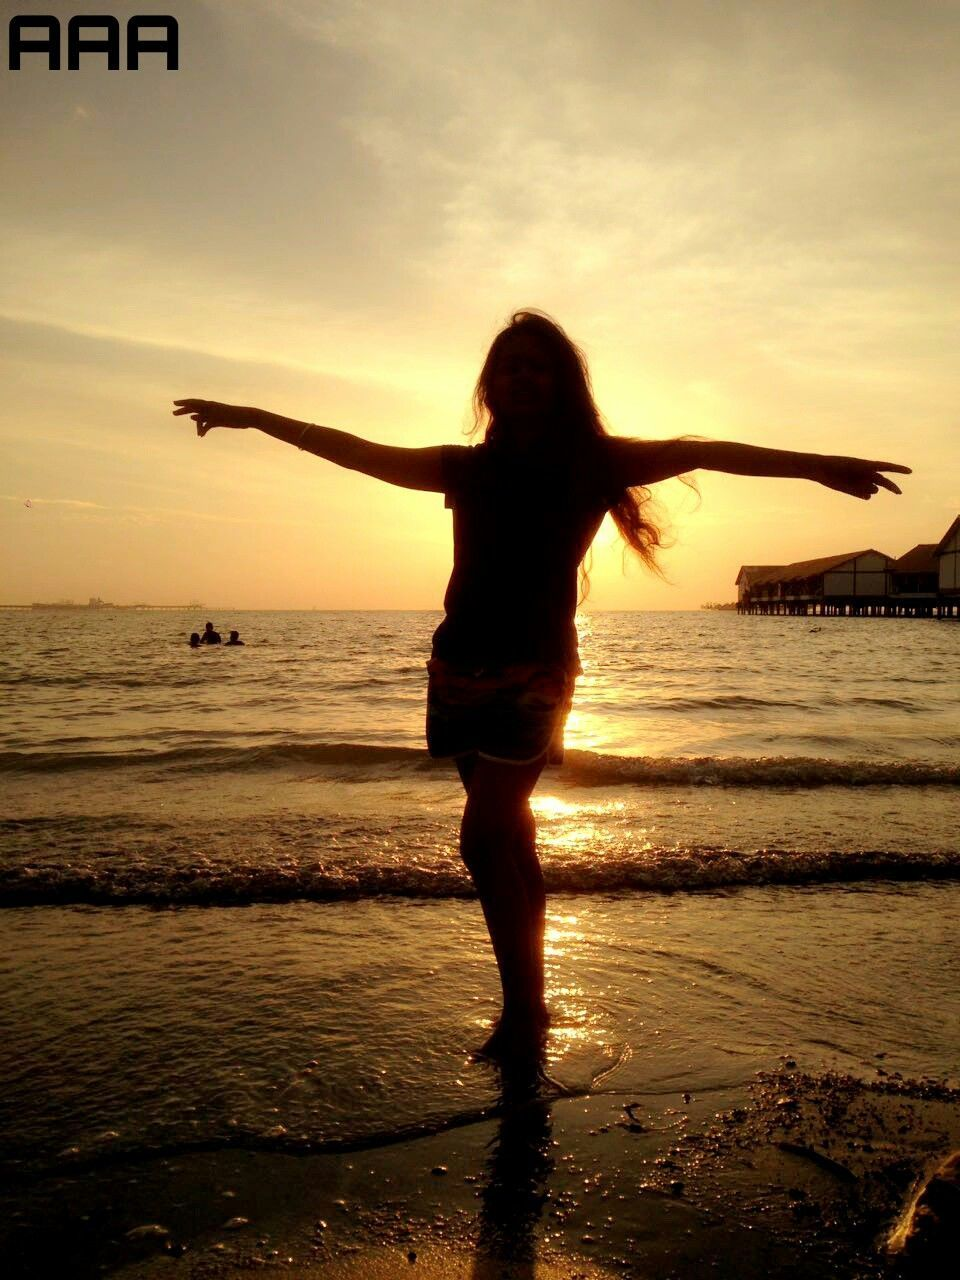 sunset, sea, arms outstretched, beach, beauty in nature, silhouette, nature, water, one person, real people, tranquil scene, scenics, full length, horizon over water, sky, lifestyles, leisure activity, outdoors, standing, women, young adult, energetic, human hand, adult, day, people